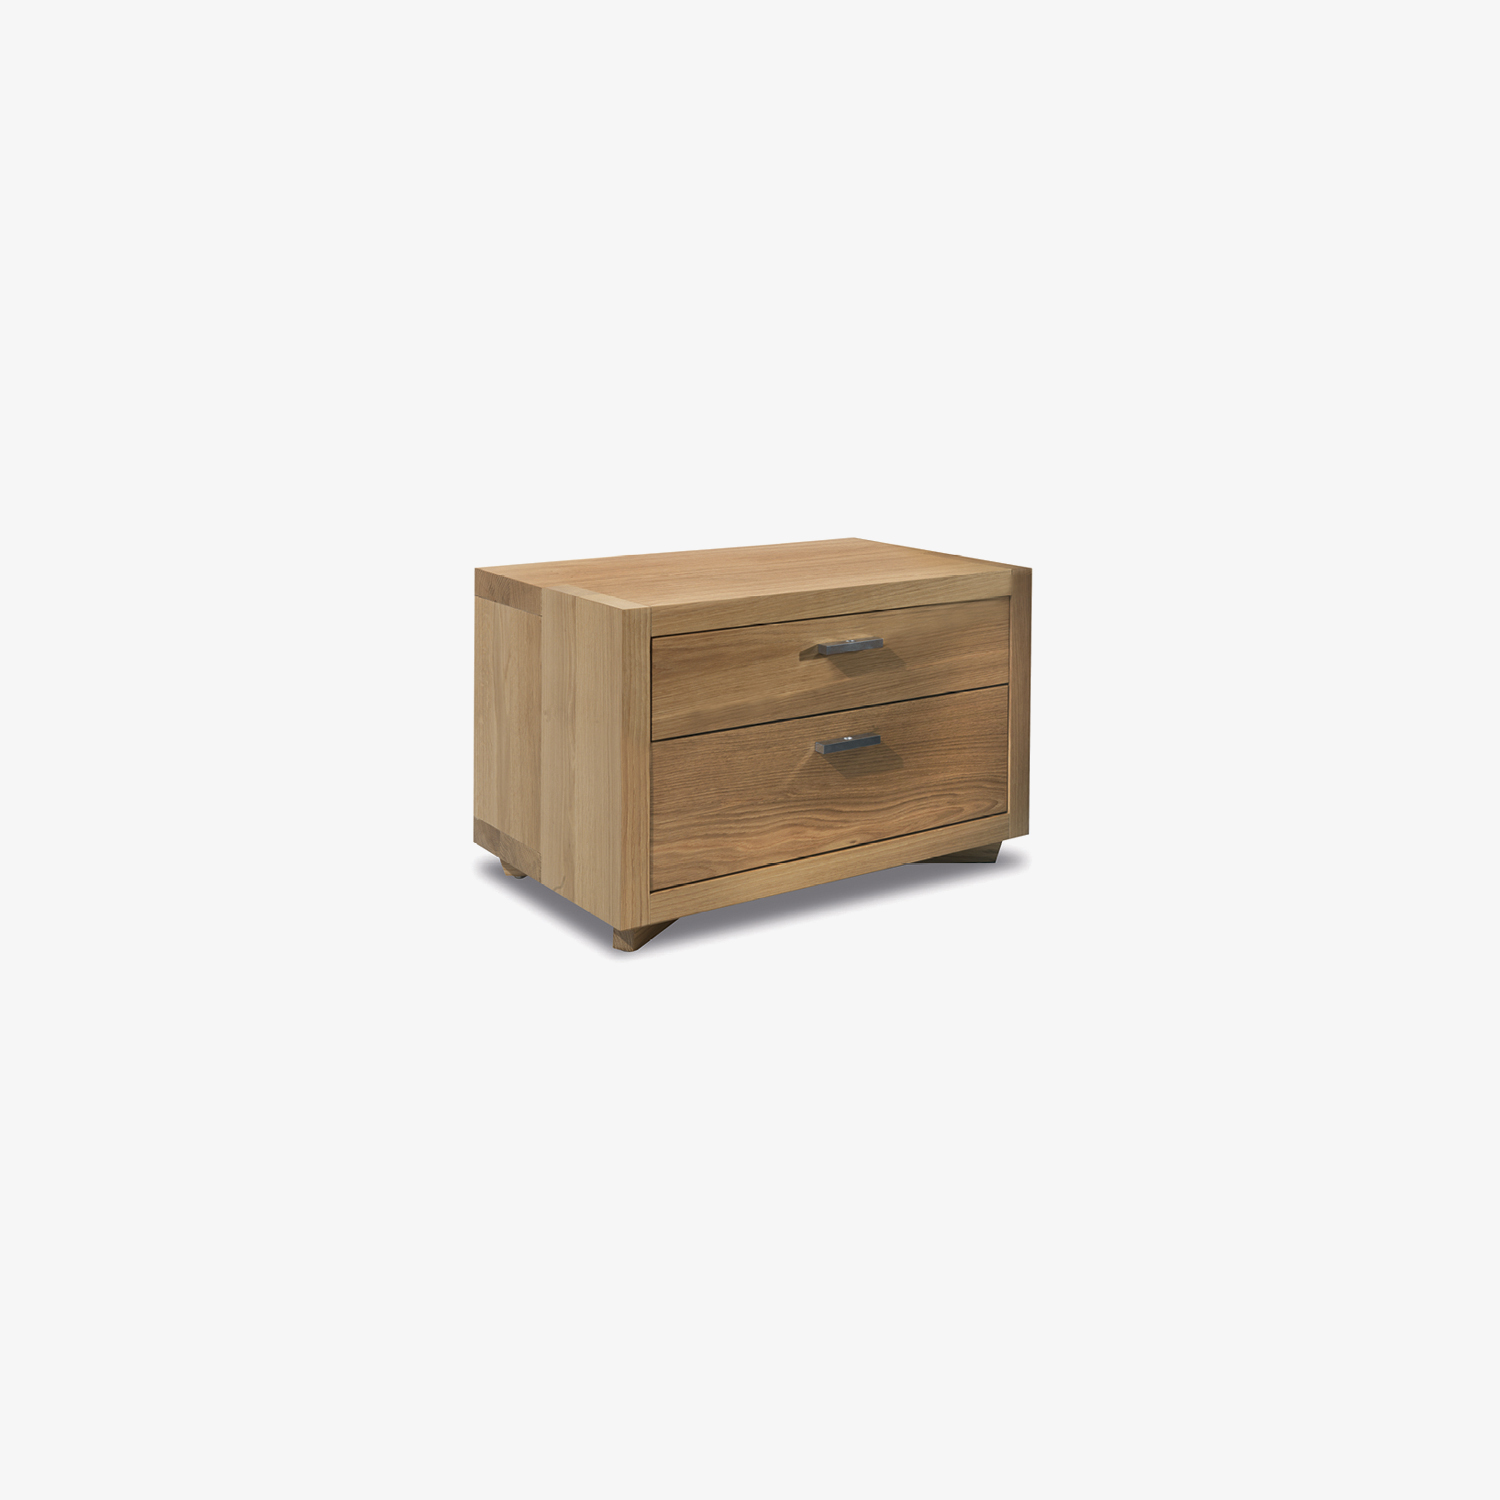 Solid wood night table CELESTINO | Modern night table | Night table